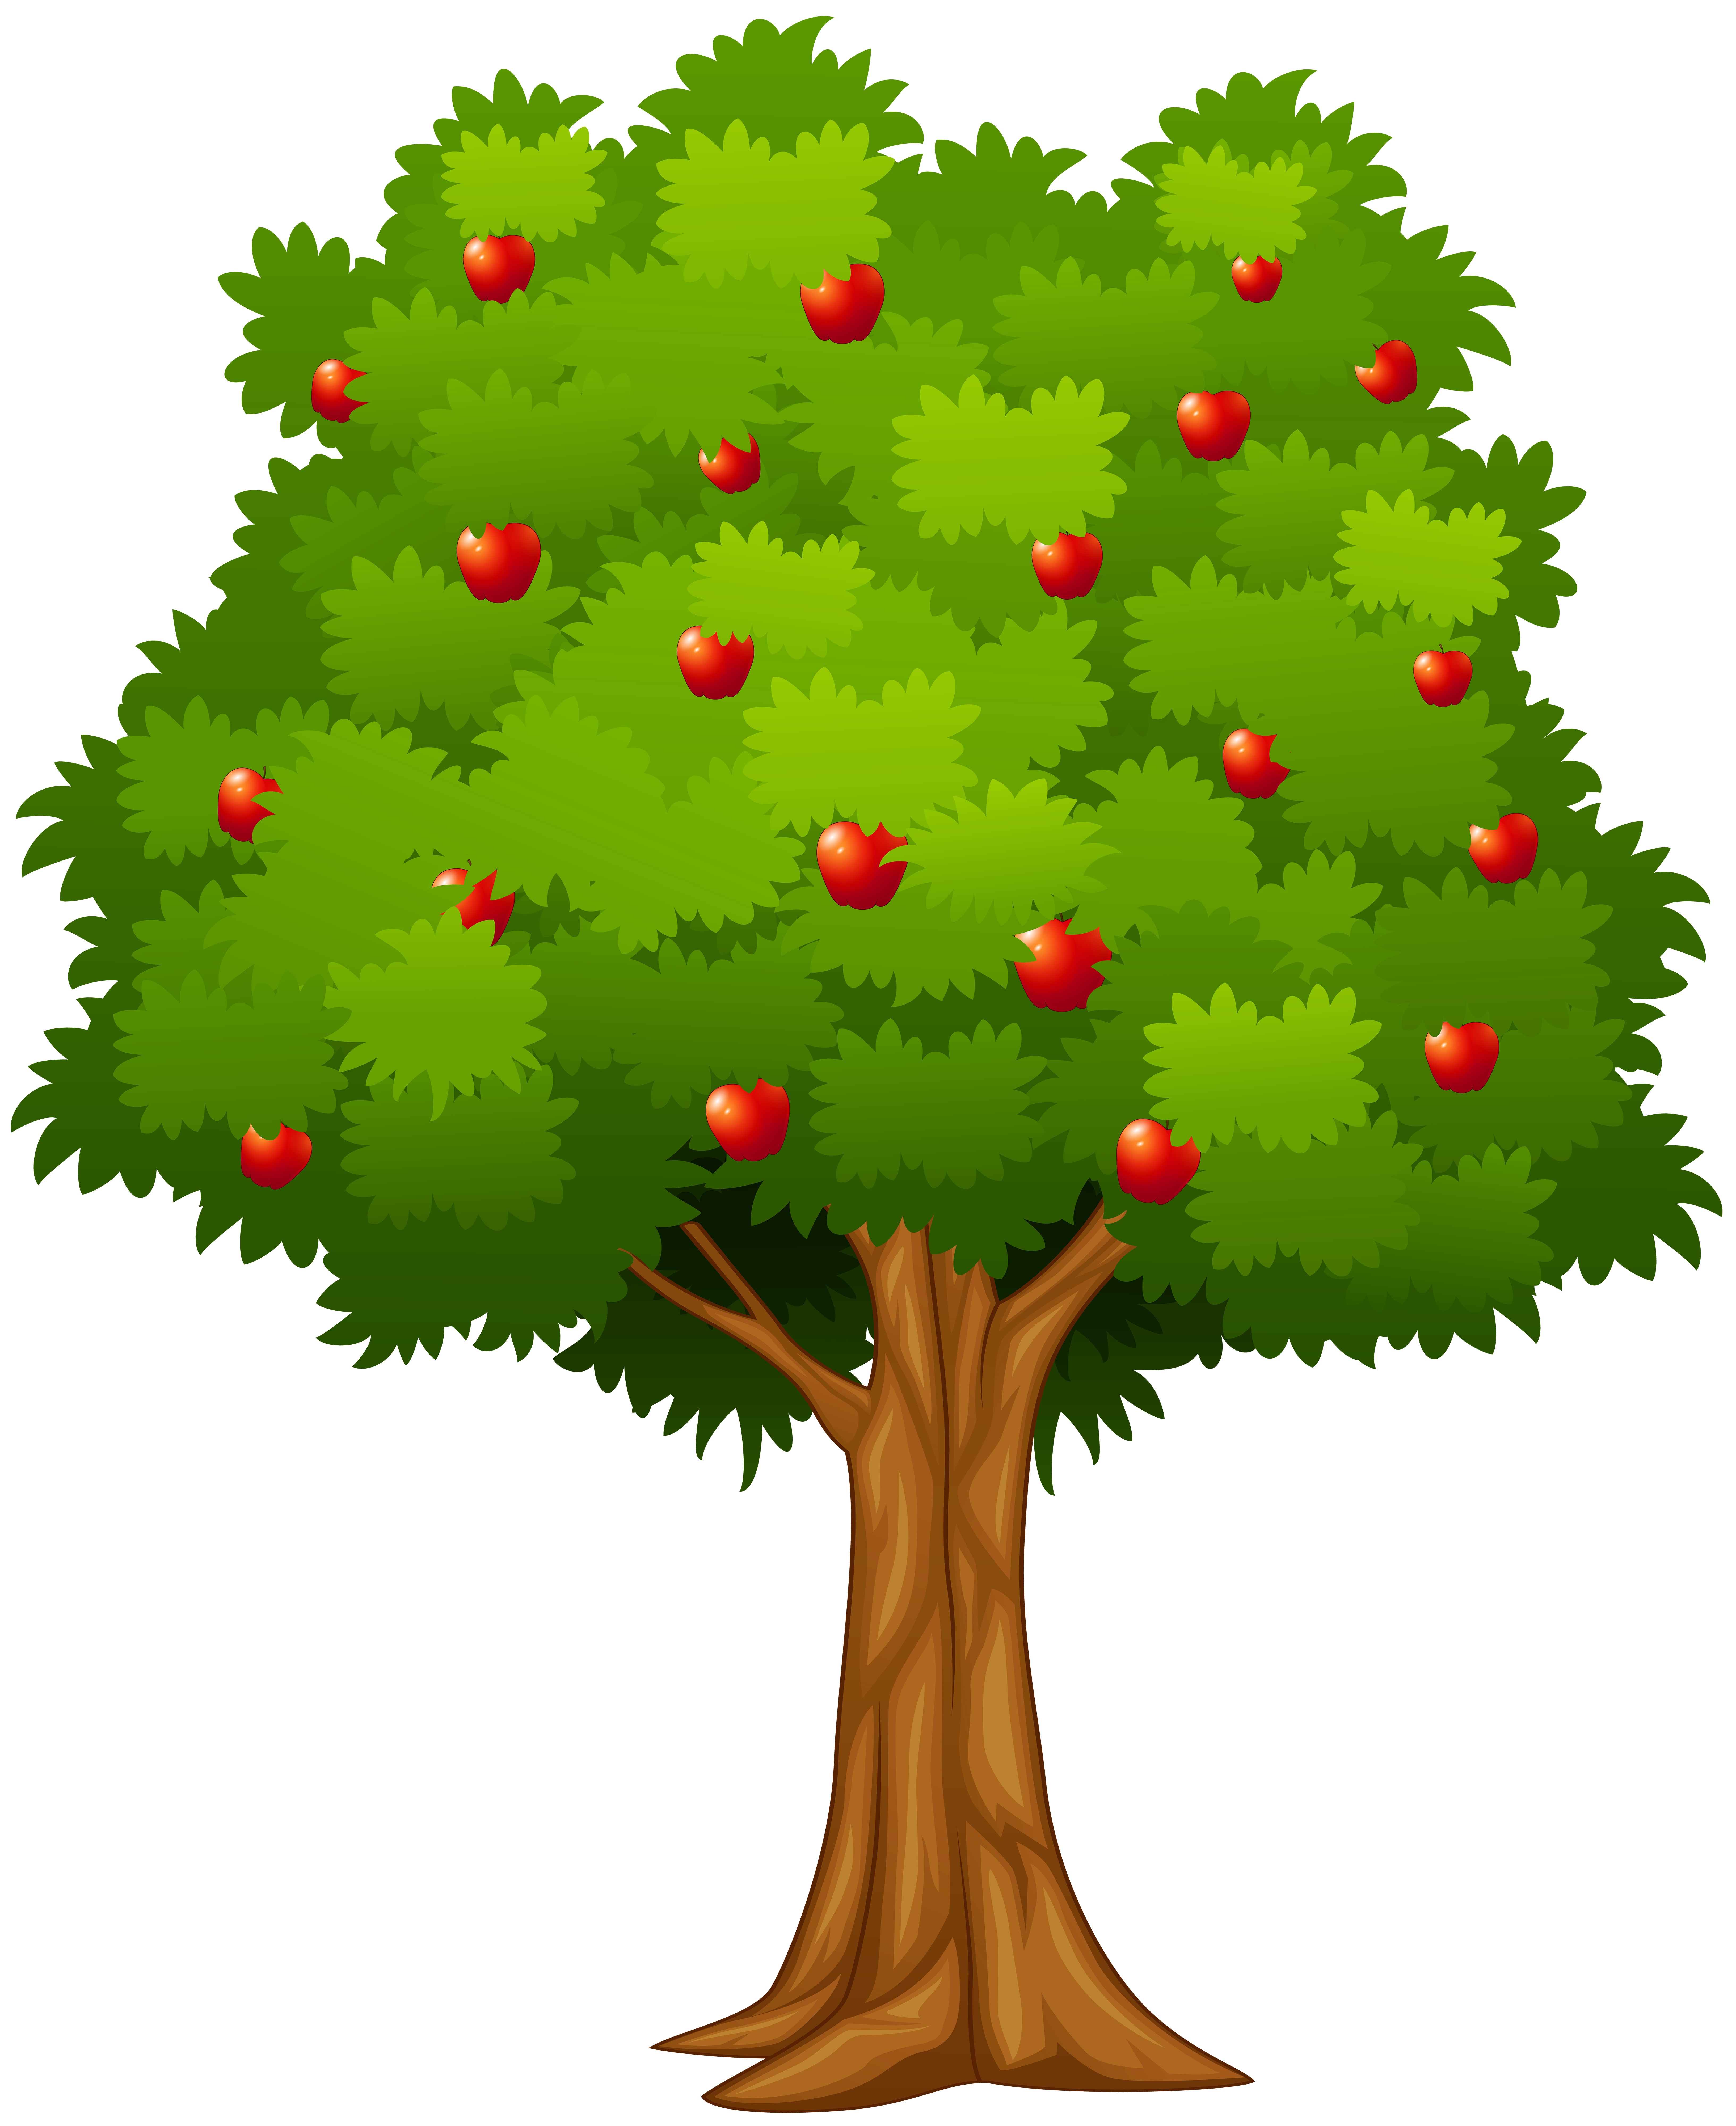 Apple Tree Png Free Use - Apple Tree PNG Clip Art Image | Gallery Yopriceville - High ...